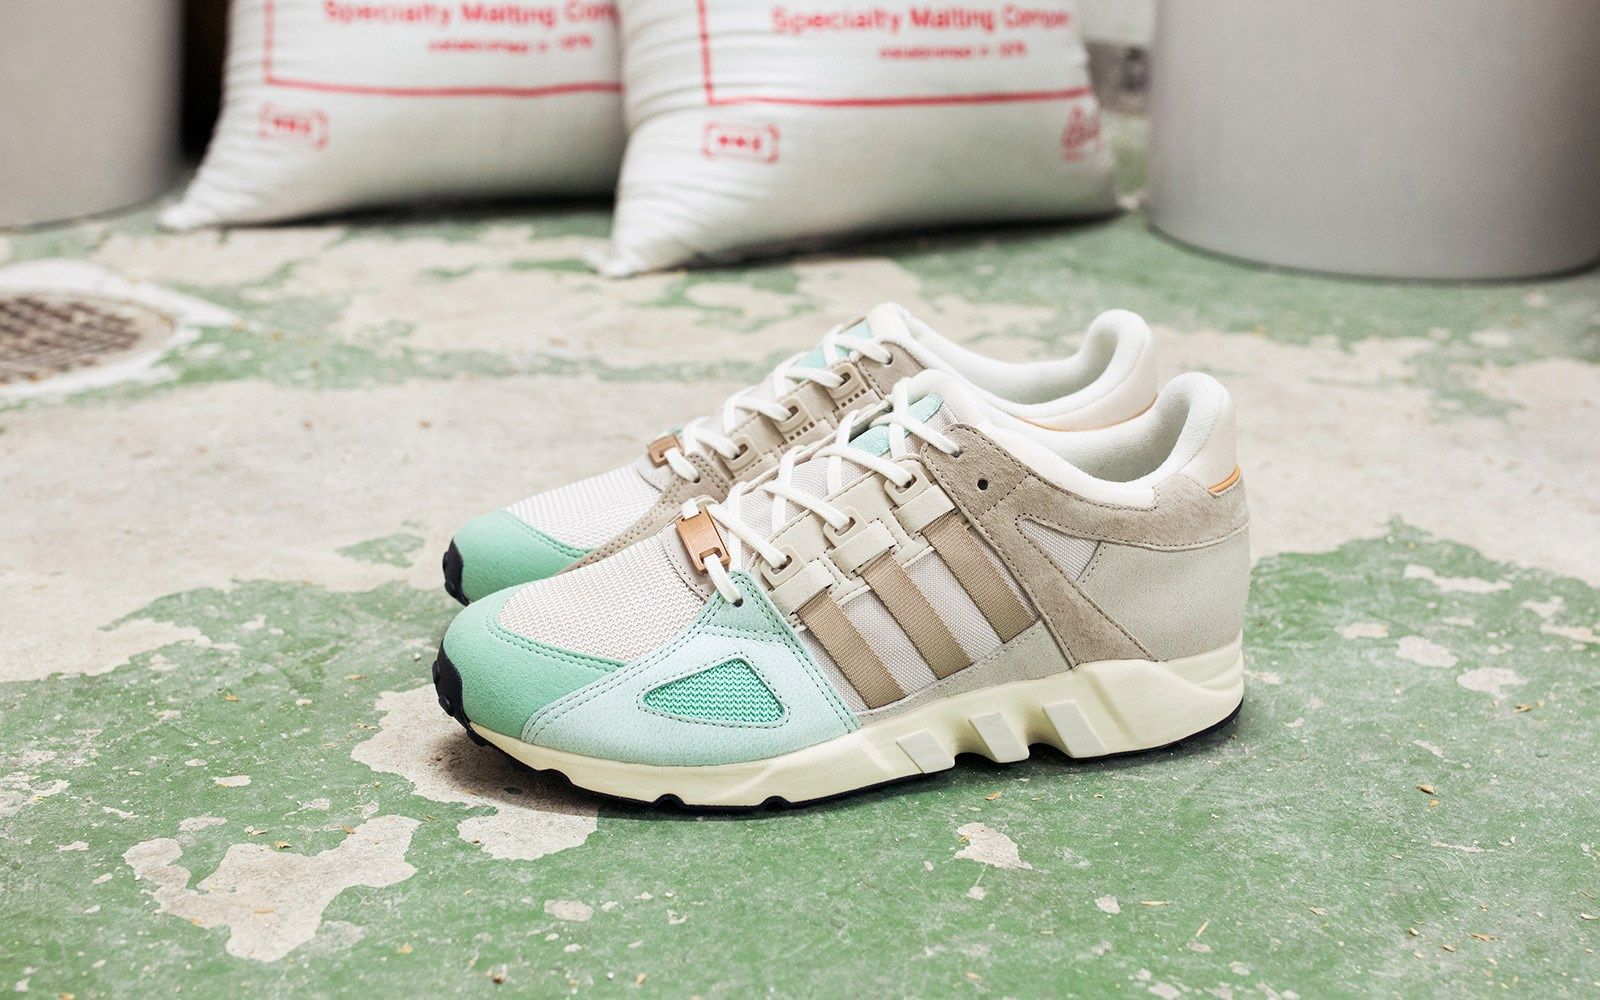 reputable site 540e9 cee30 ... best price adidas eqt running guidance 93 s82532 sneakersnstuff  sneakers streetwear online since 1999 835e1 1f84a ...